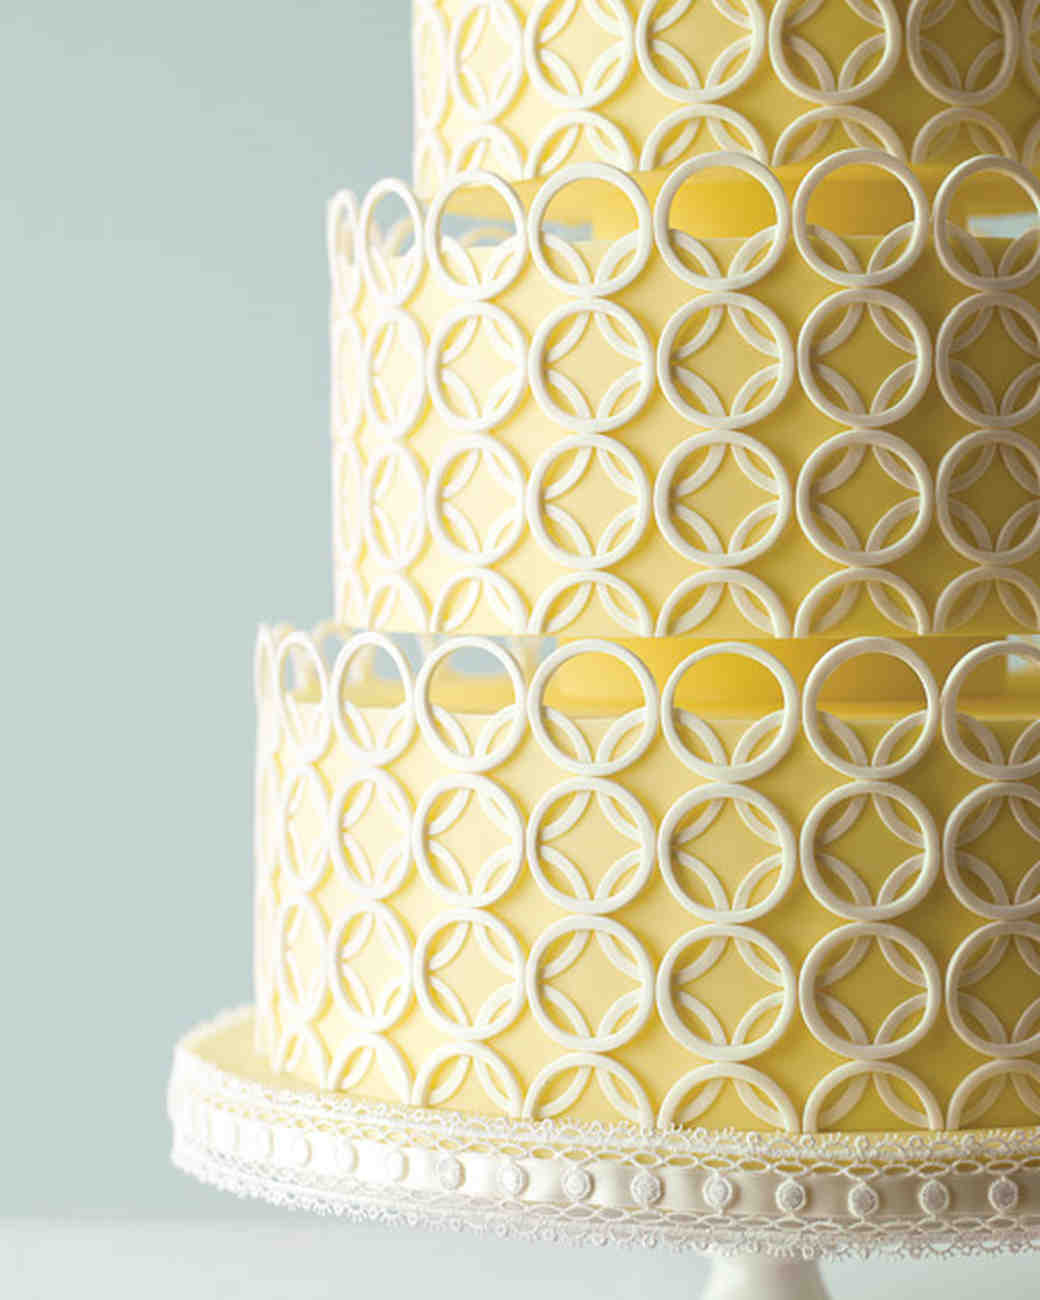 ring-inspired wedding cake